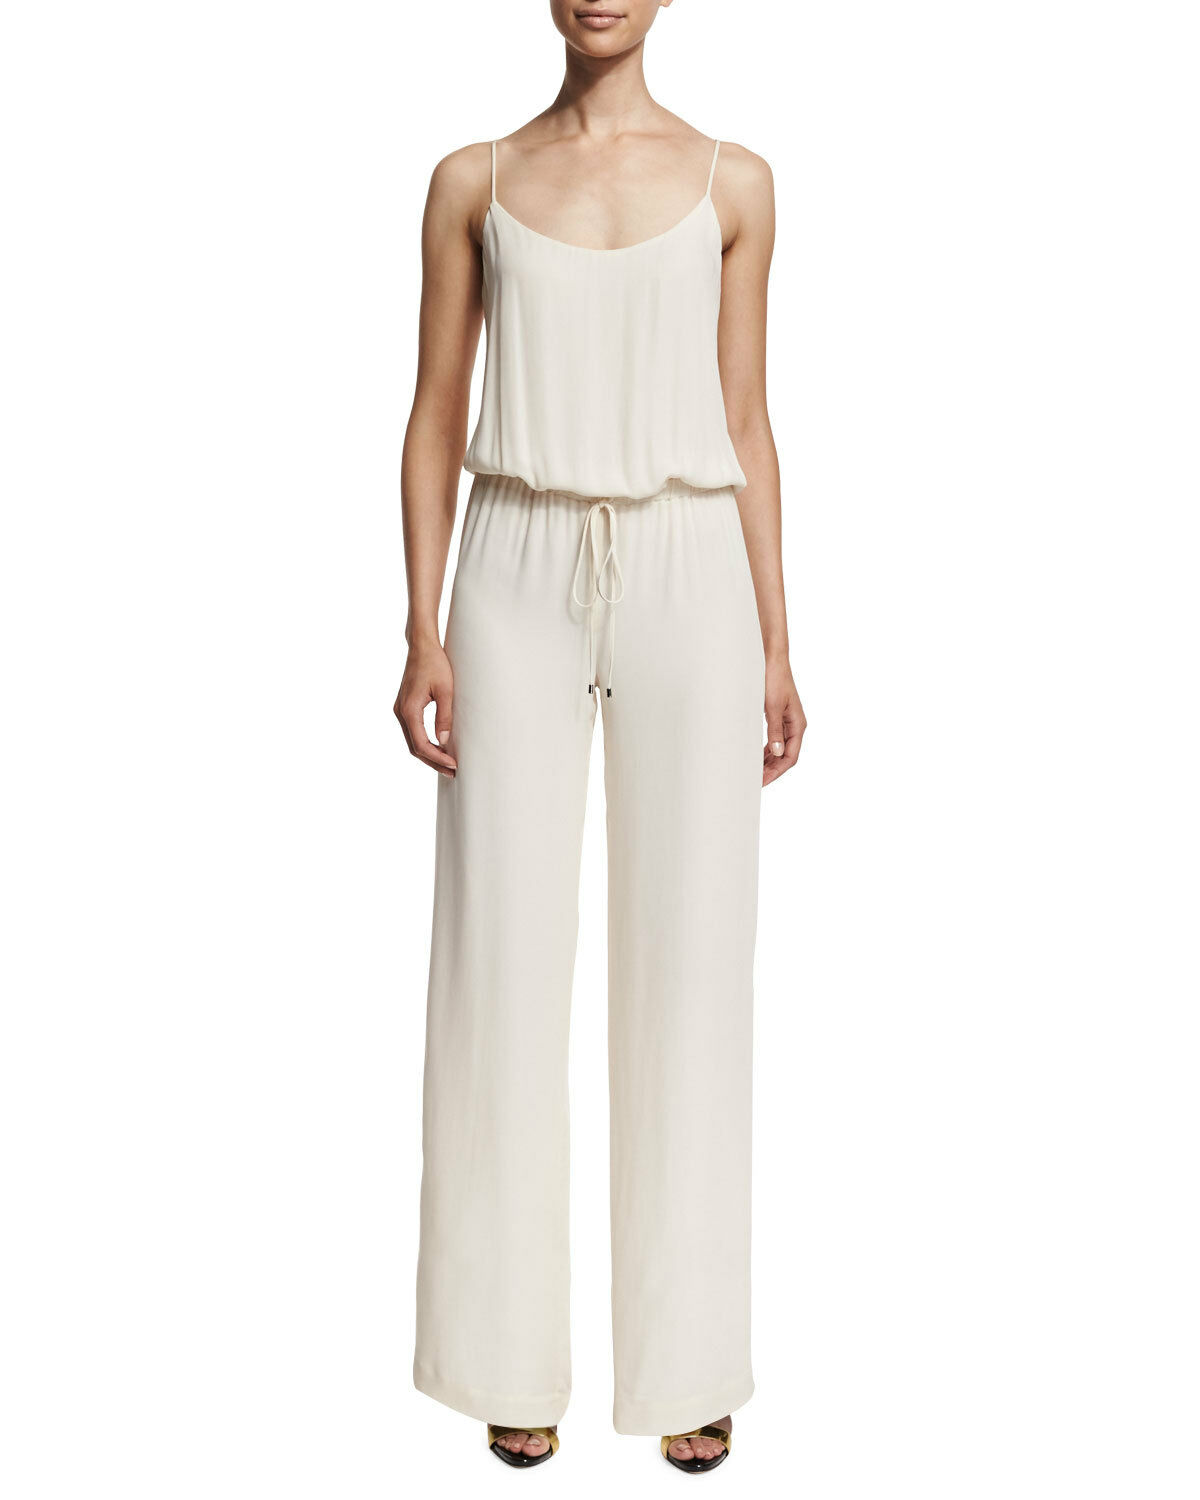 Haute Hippie Camisole Wide-Leg Jumpsuit, Antique Ivory   585.00 Size L